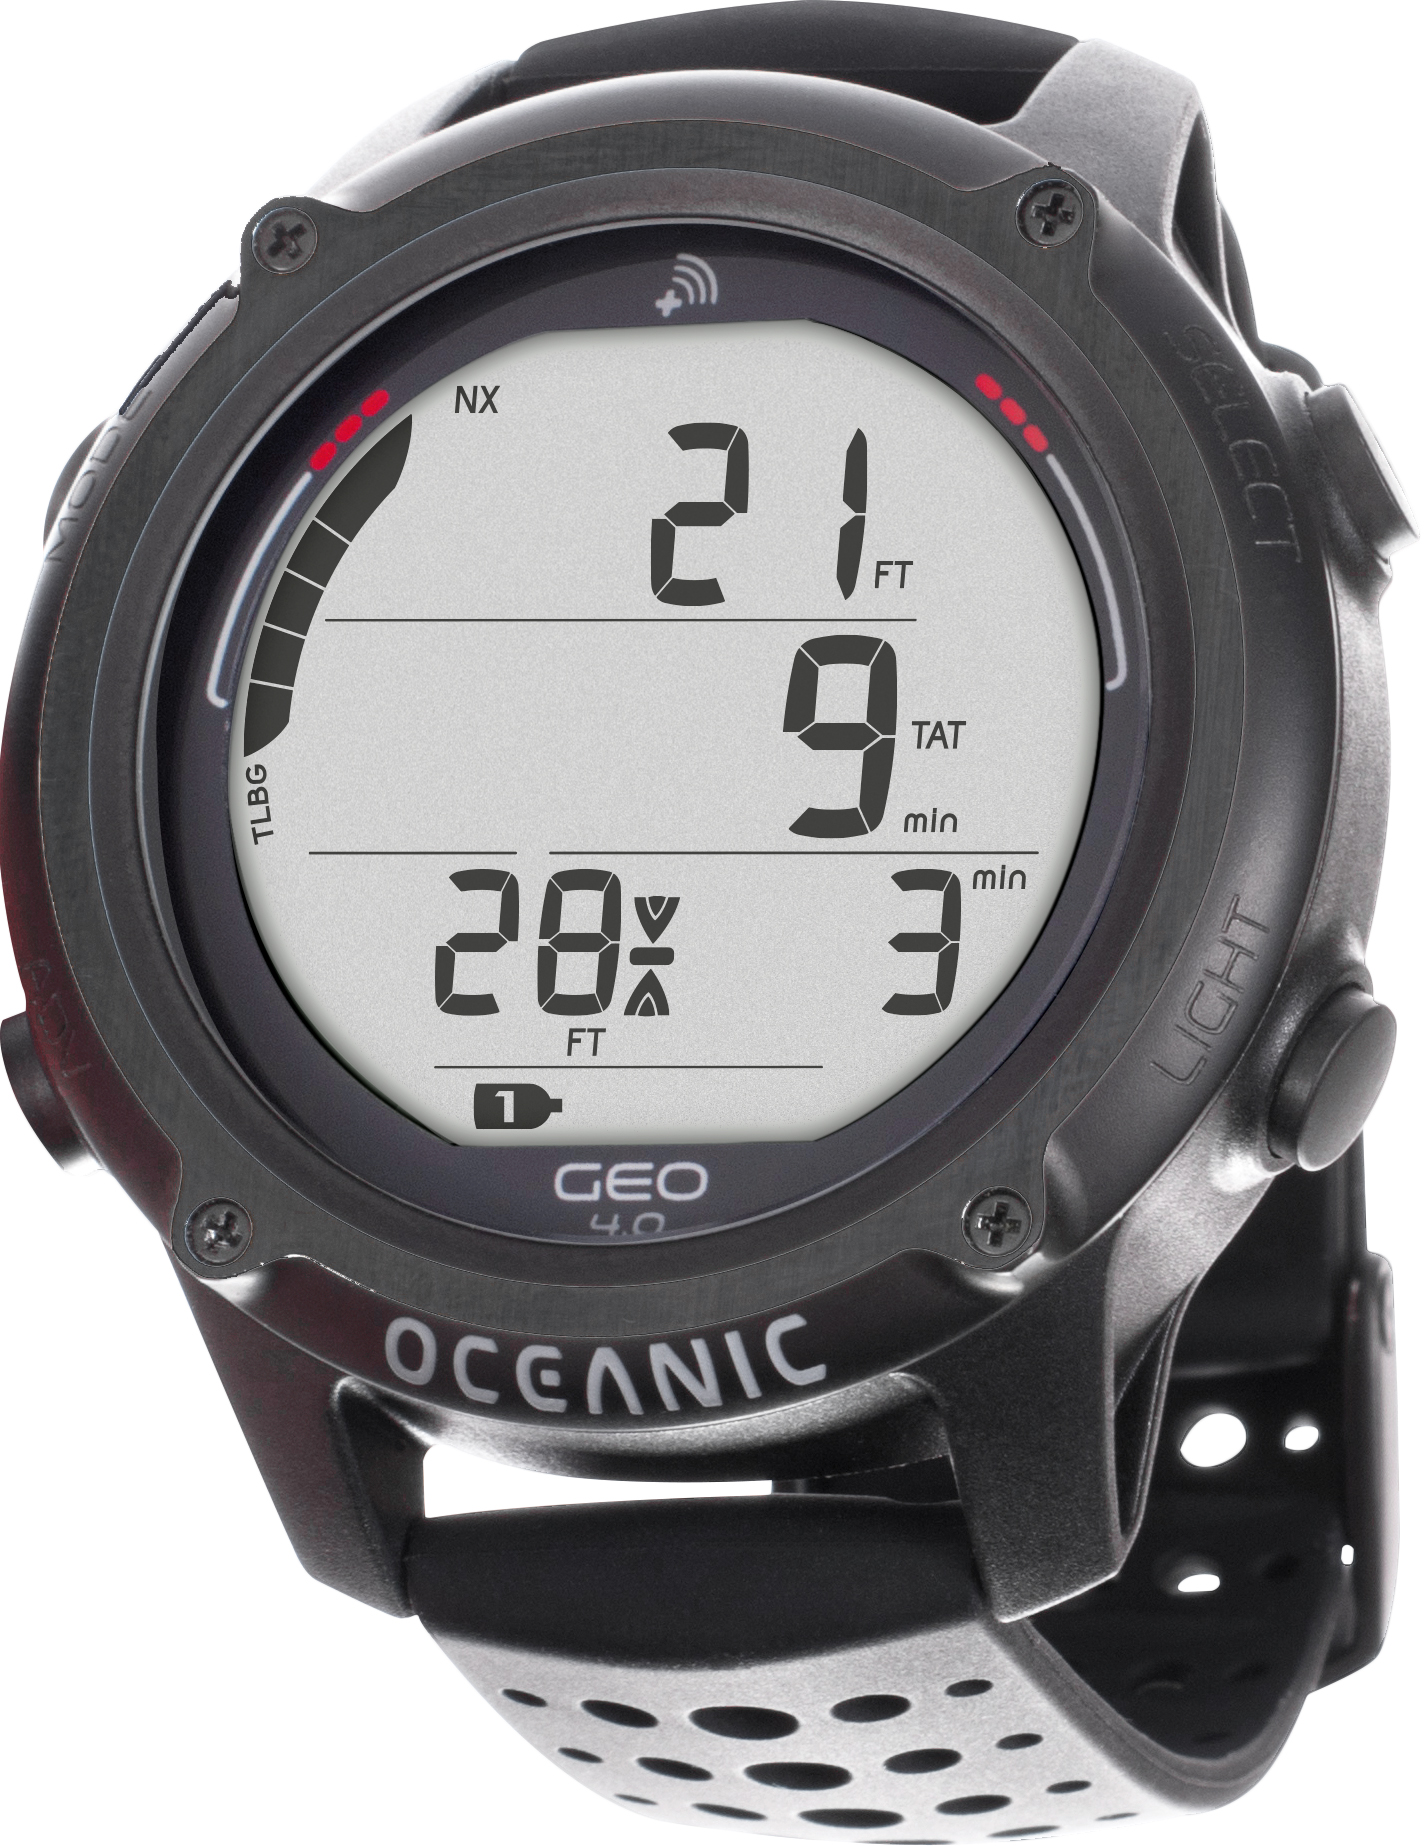 GEO-4.0-Oceanic-TECNOMAR-DIVING